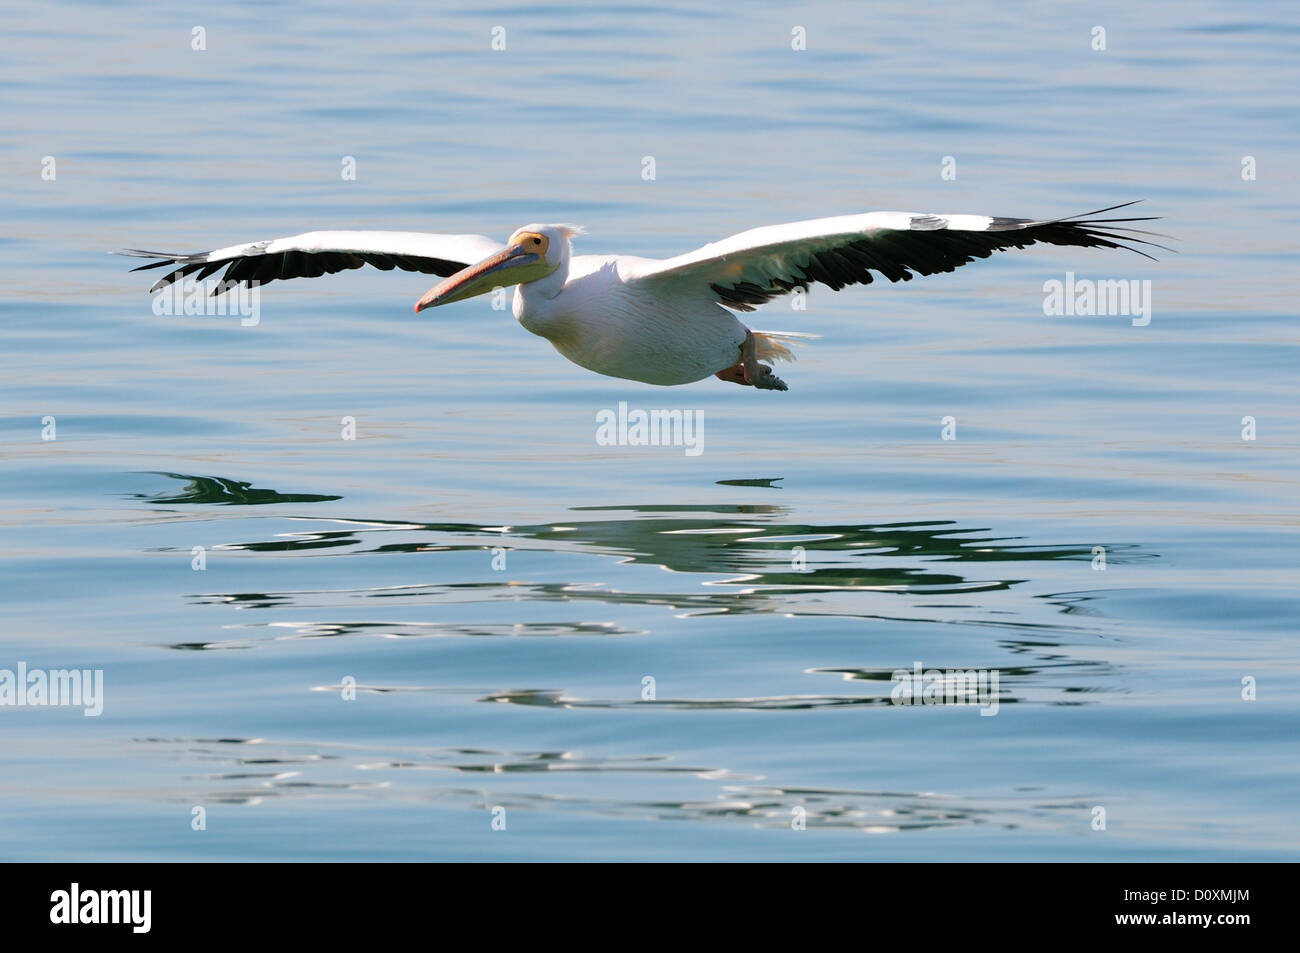 Africa, Namibia, Walvis Bay, Pelican, bird, flying - Stock Image